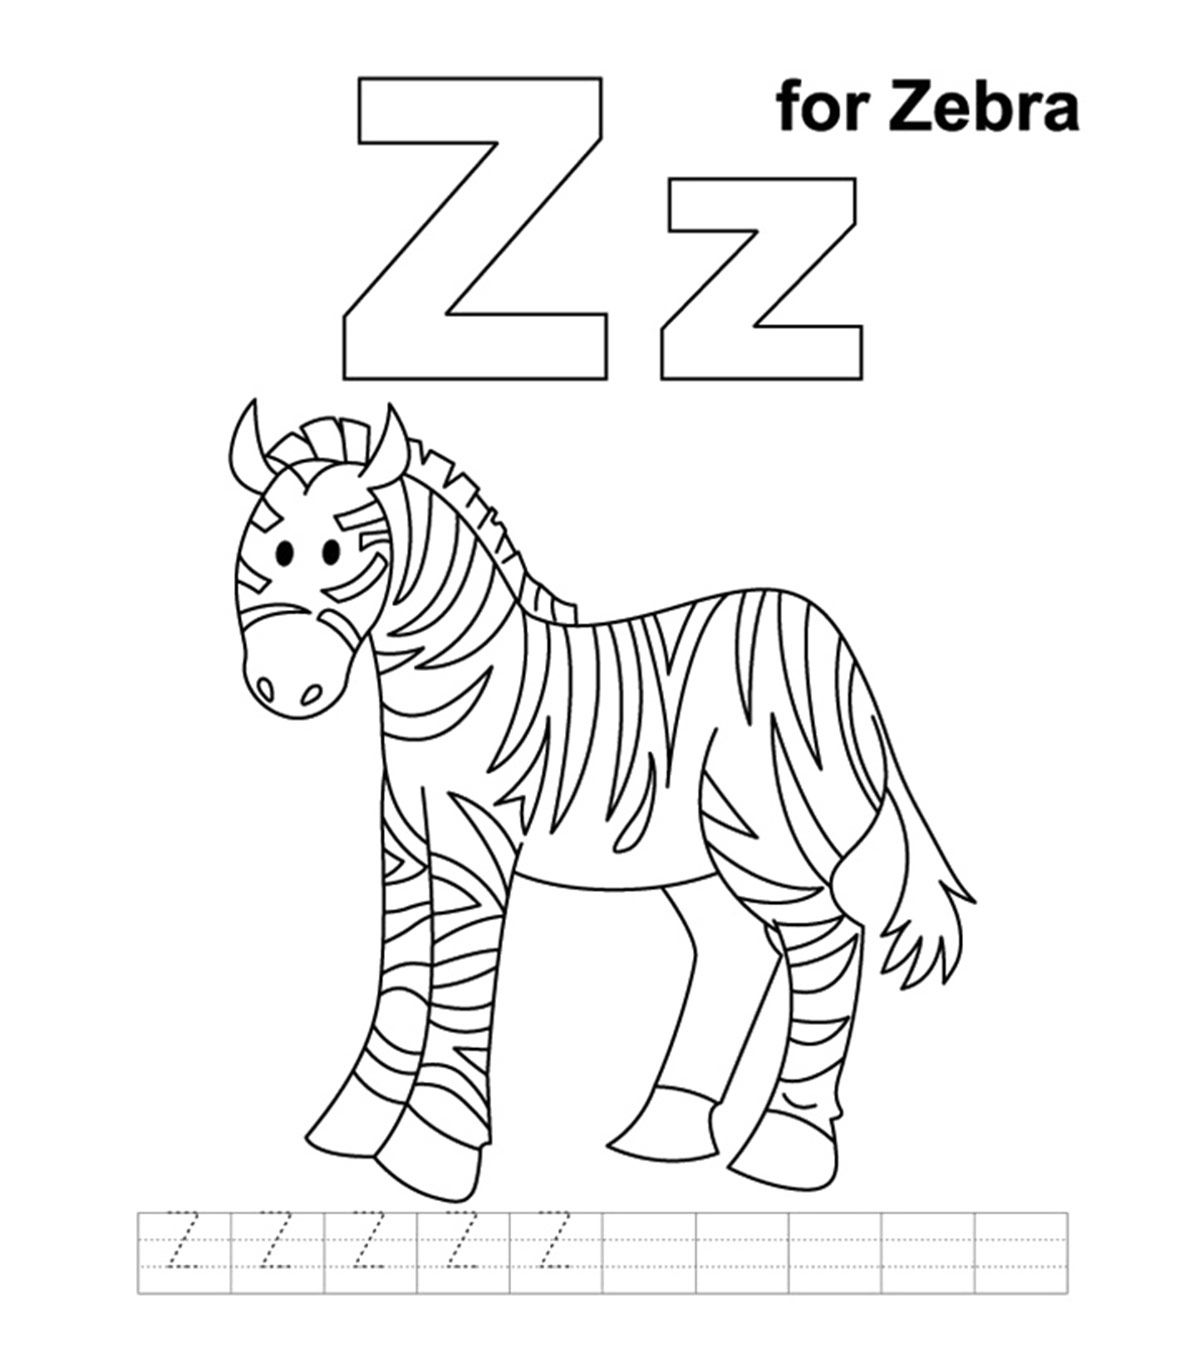 Top 10 Letter Z Coloring Pages Your Toddler Will Love To Learn Color Zebra Coloring Pages Animal Alphabet Letters Color Worksheets